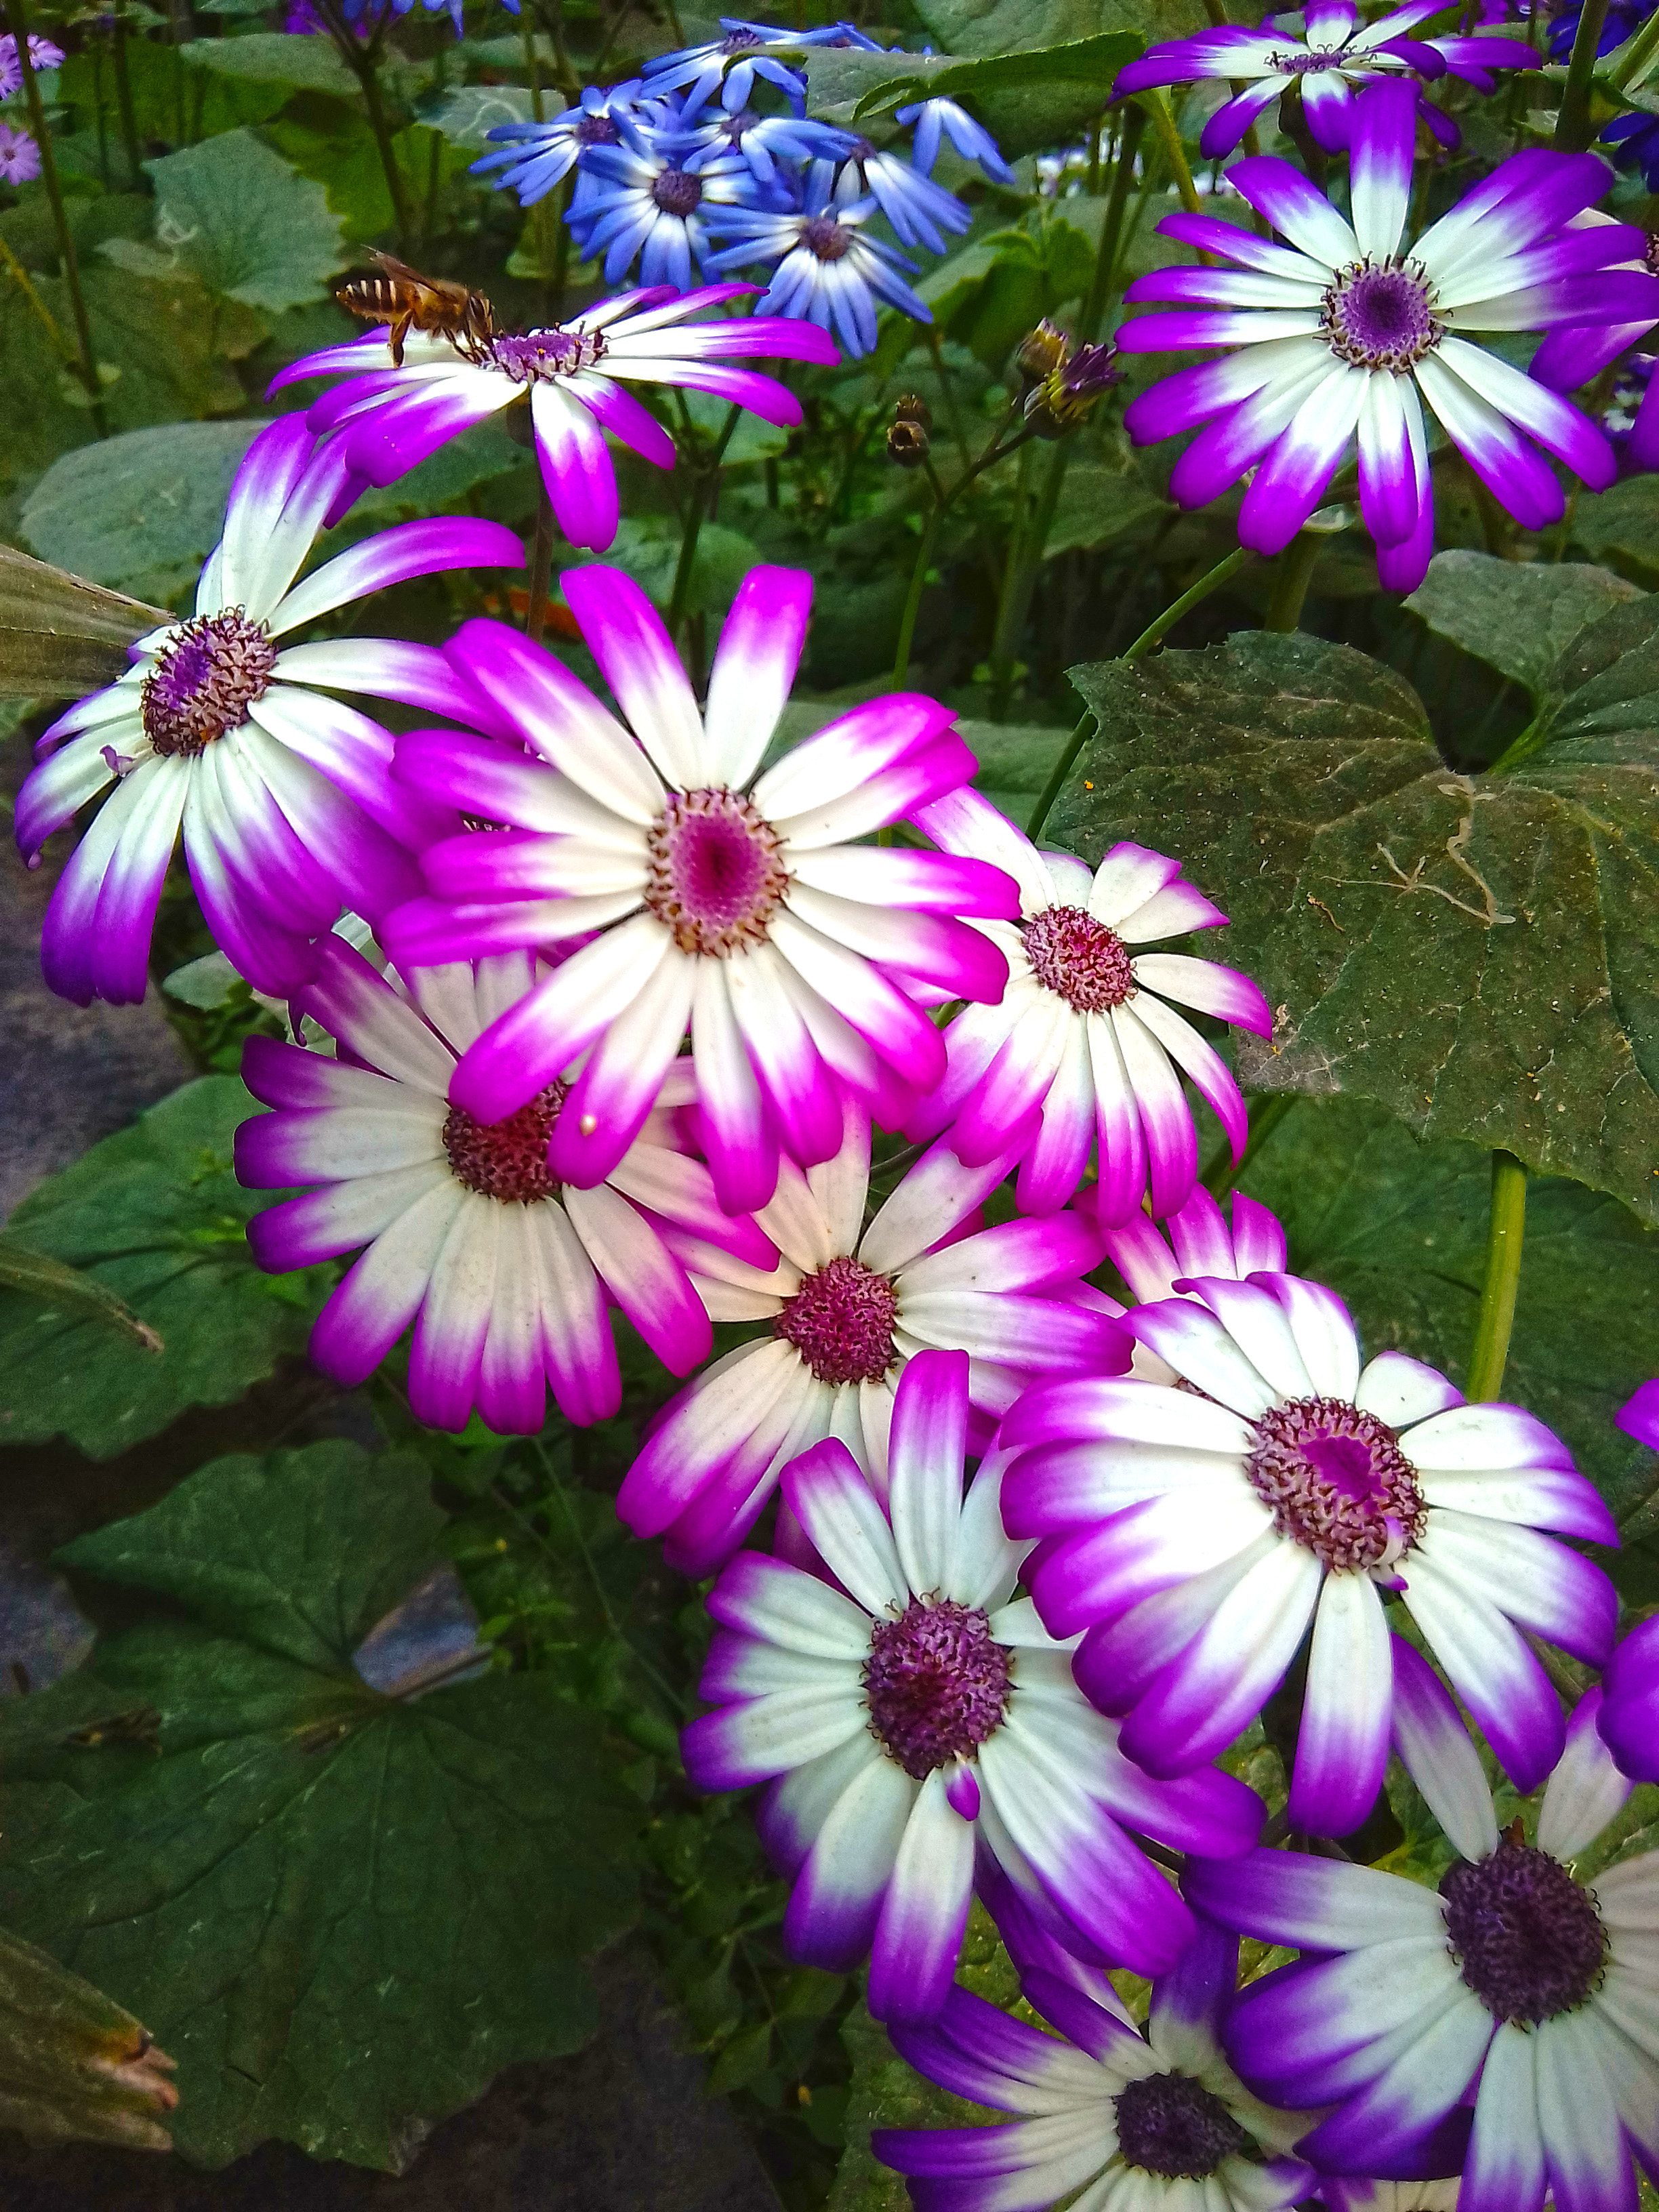 Senetti flowers Photo is very beautiful